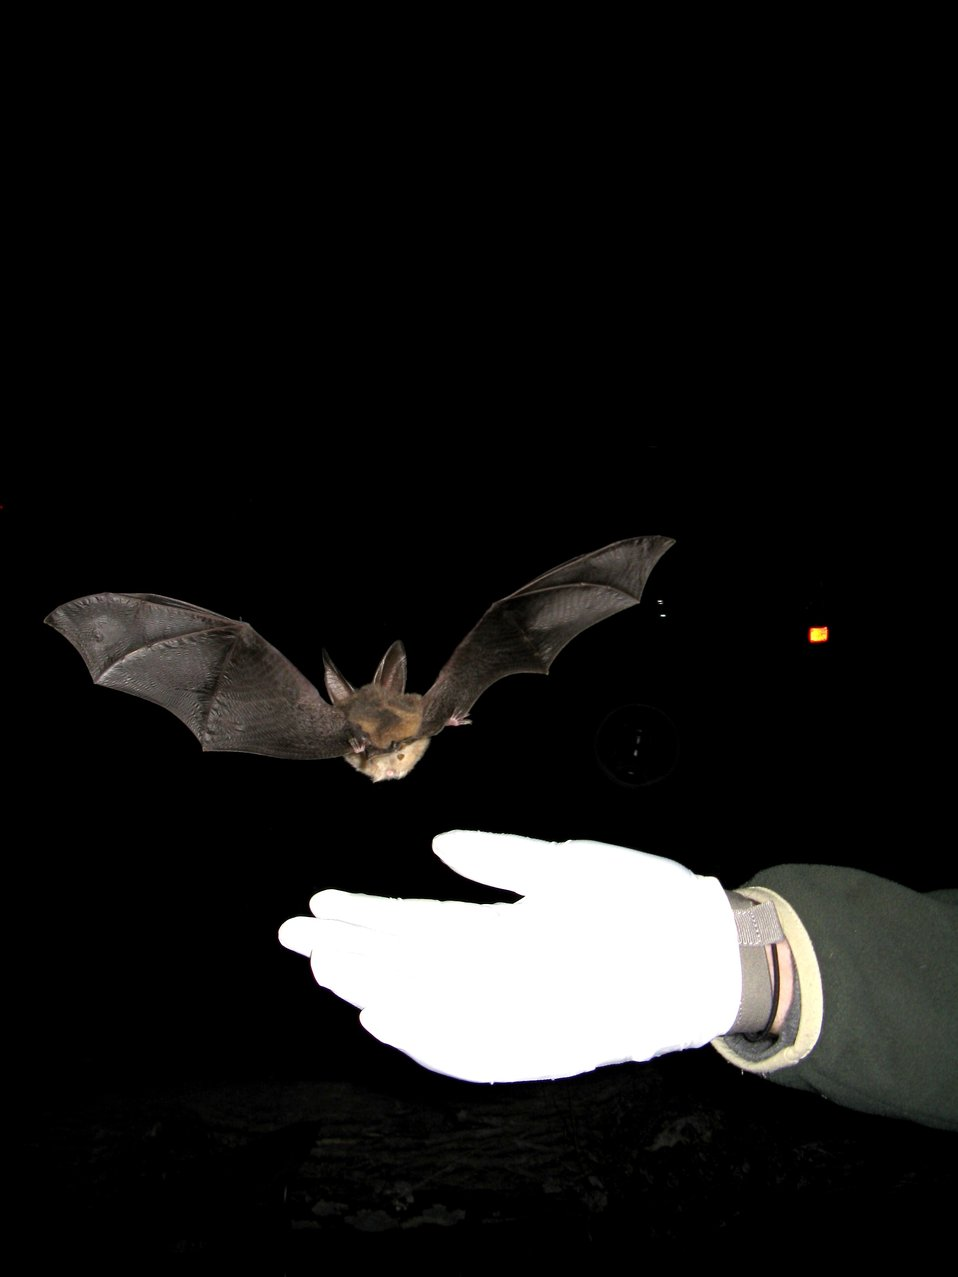 Virginia big-eared bat being released